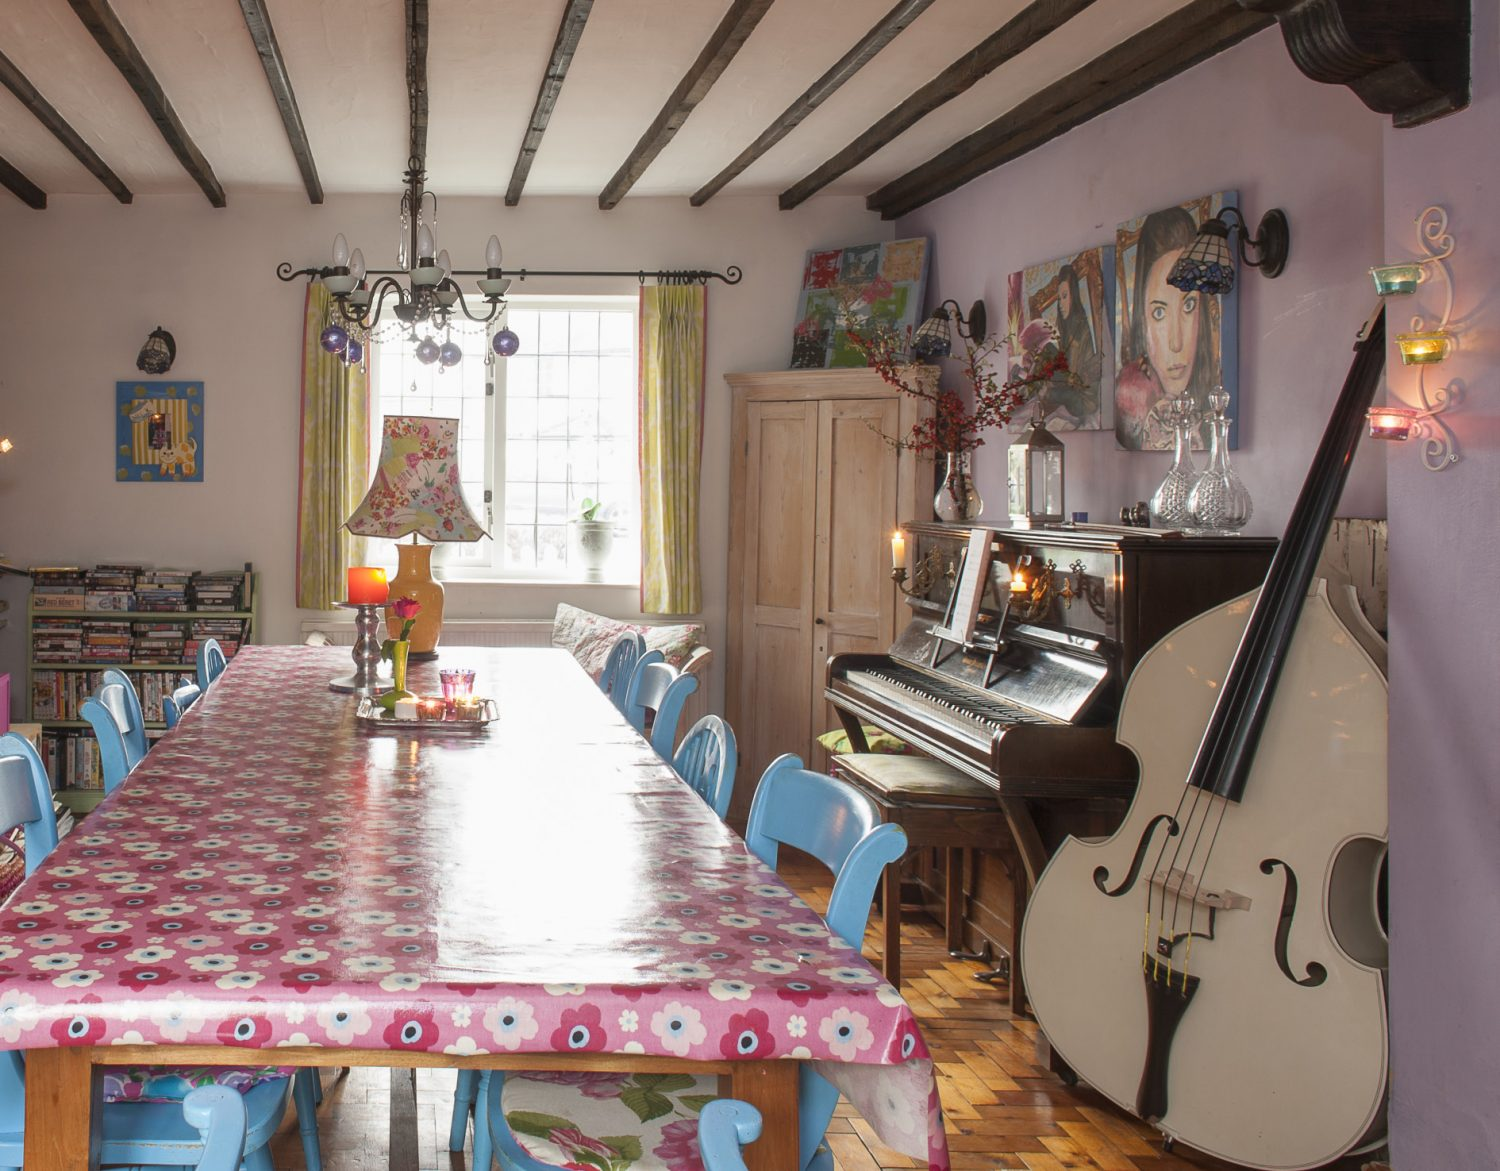 The spacious dining room is painted a strong lilac and everywhere there are witnesses to the family's artistic and musical commitments